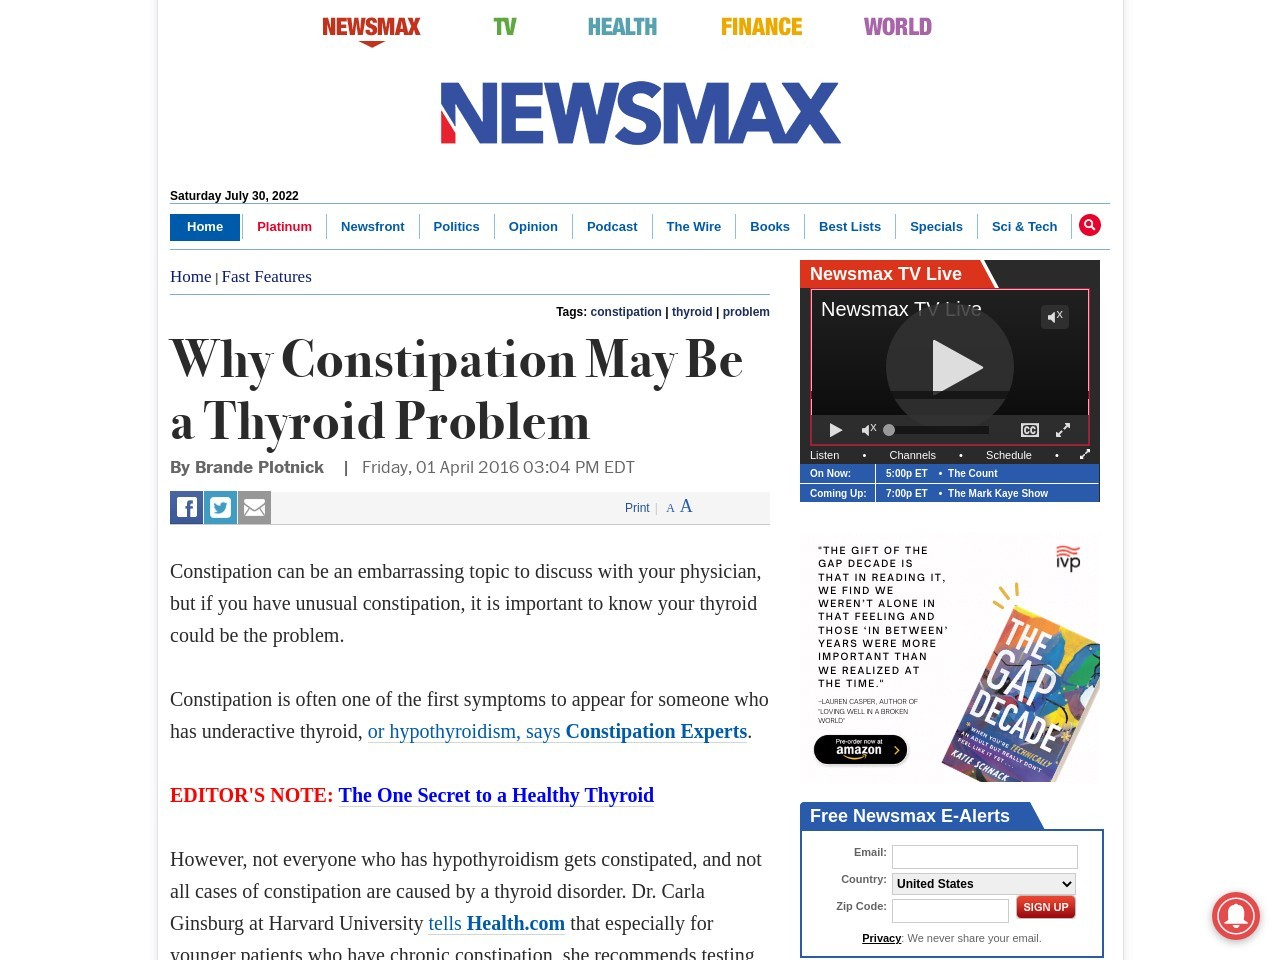 Why Constipation May Be a Thyroid Problem